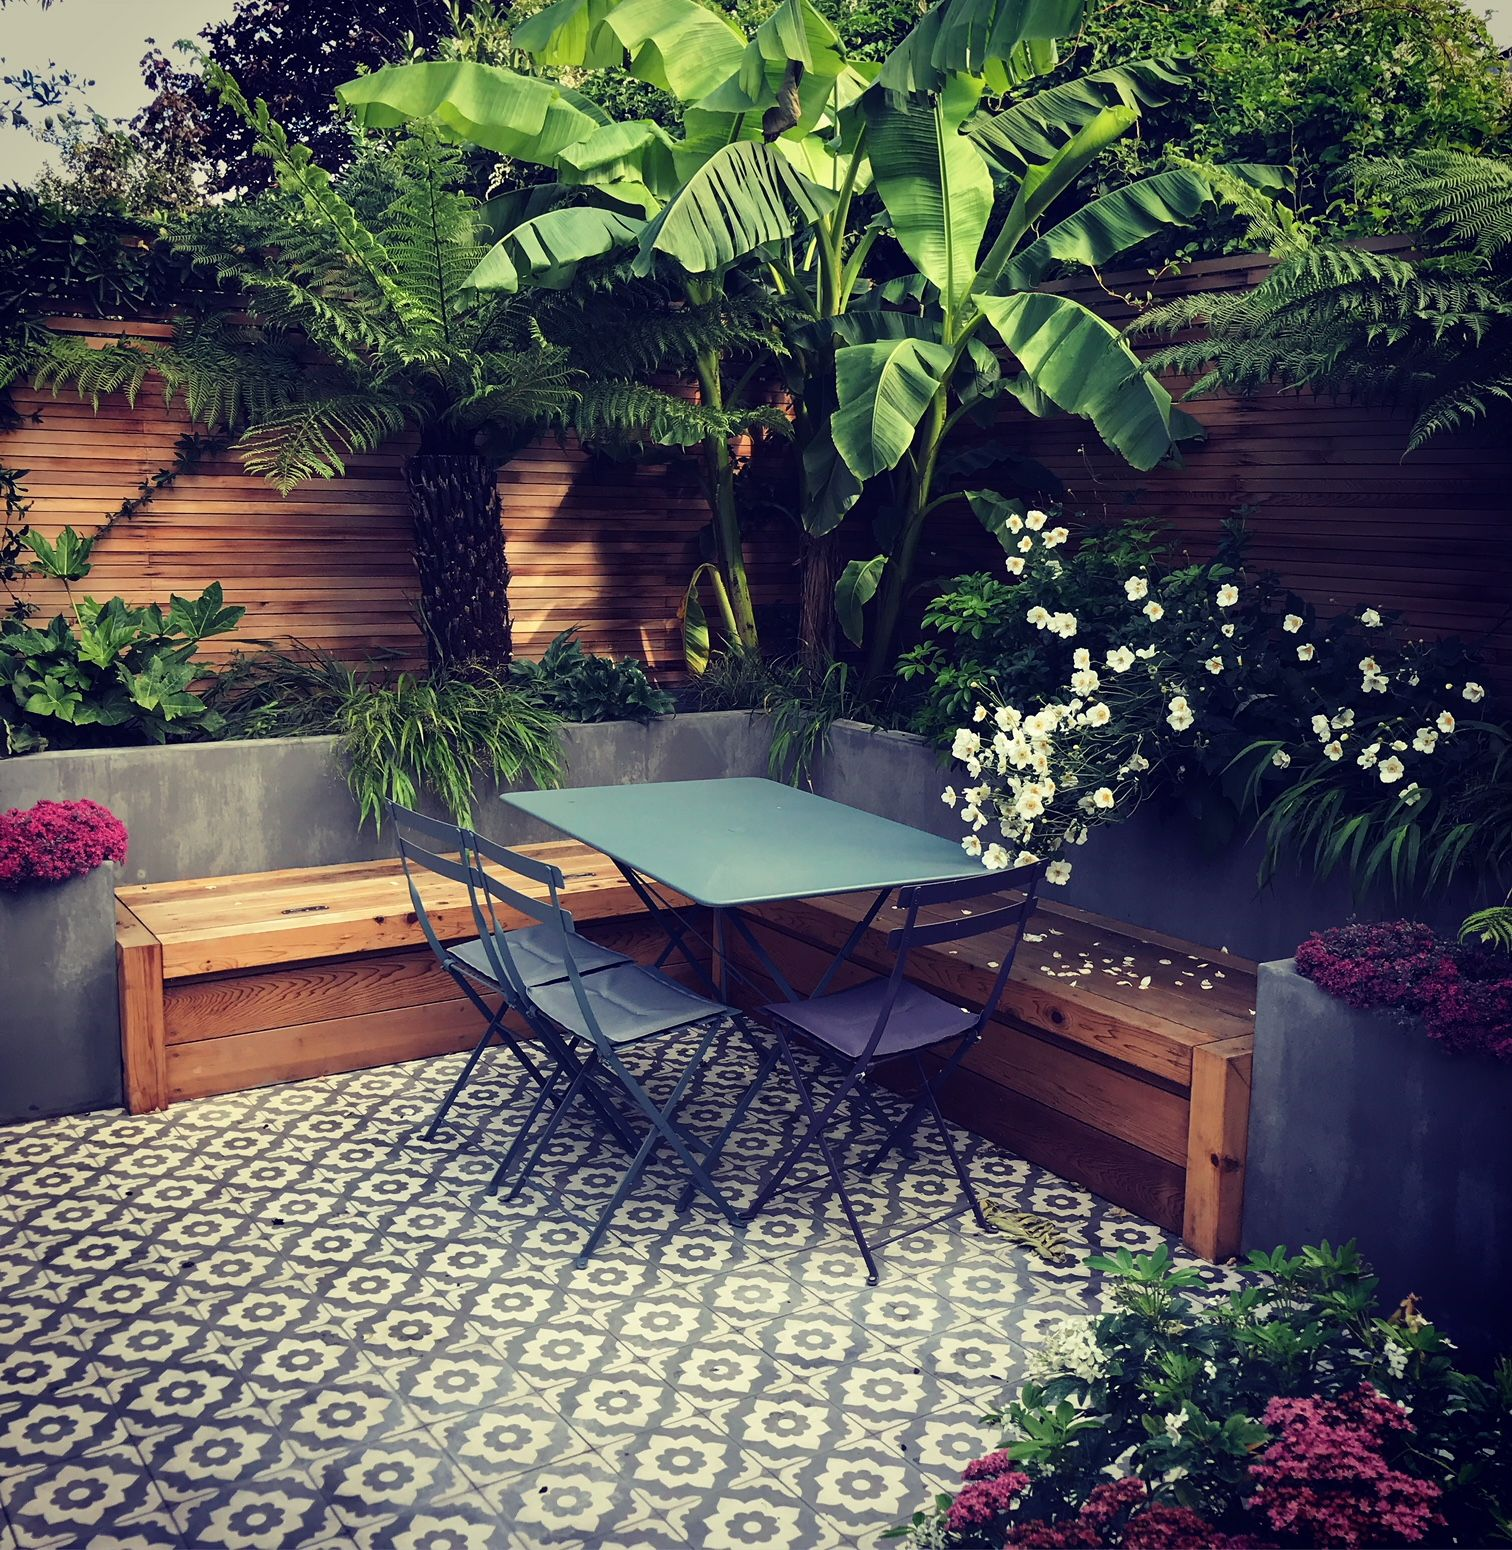 Urban Haven Family Garden With Semi Tropical Planting Designed For Clients In Sw London Tiled Patio Mo Garden Design Front Garden Design Garden Design London